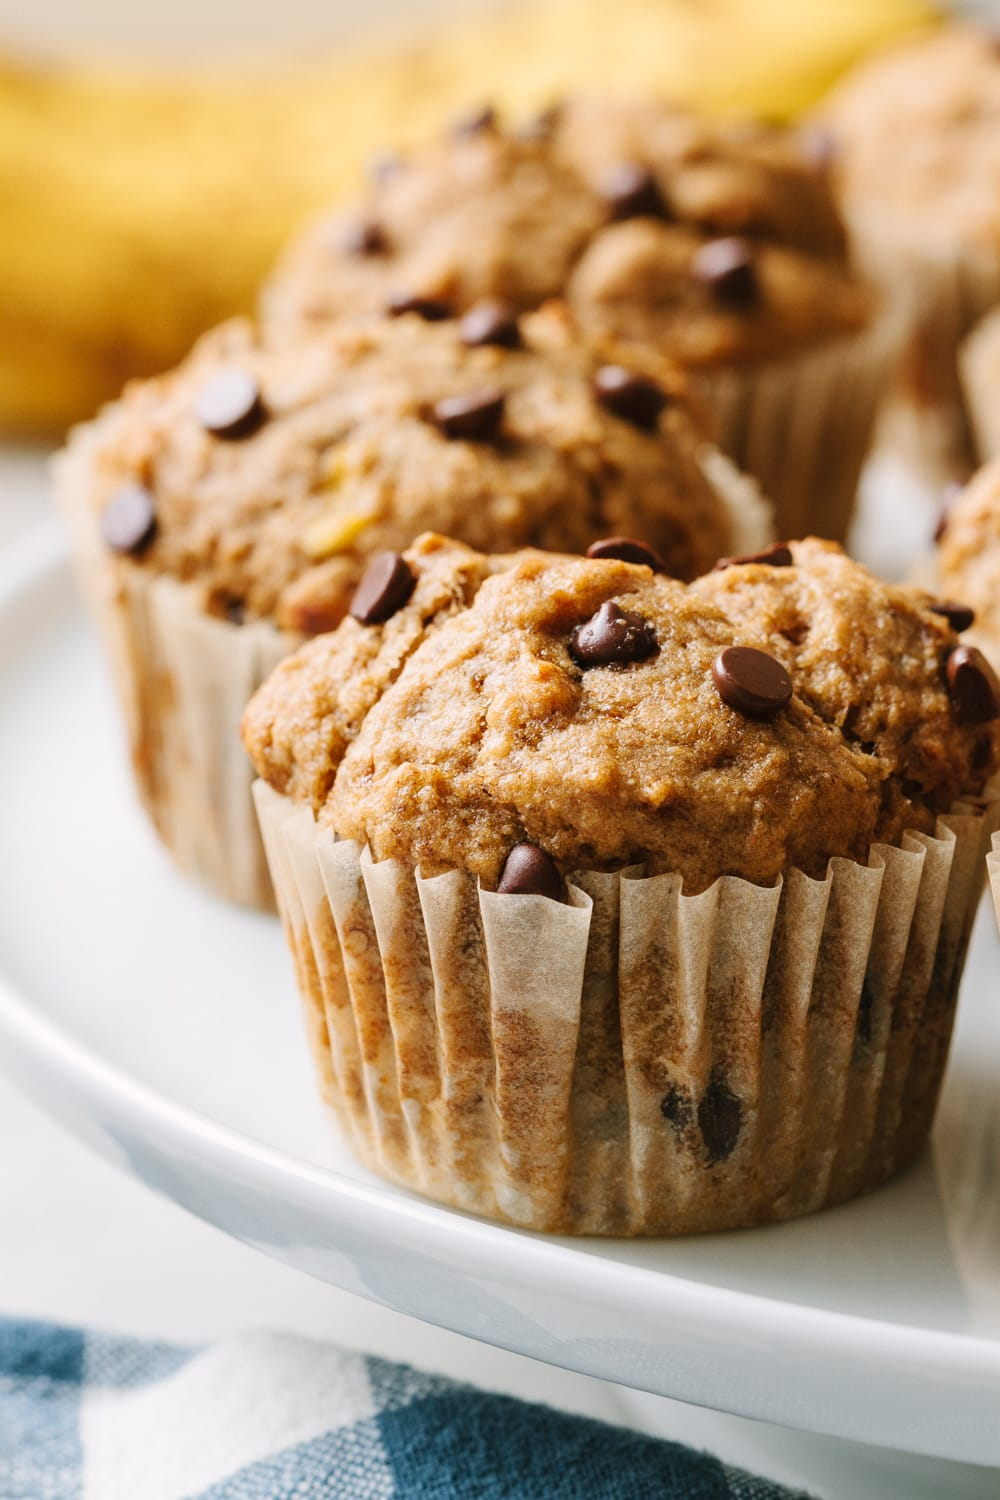 Healthy Banana Chocolate Chip Muffins Vegan The Simple Veganista